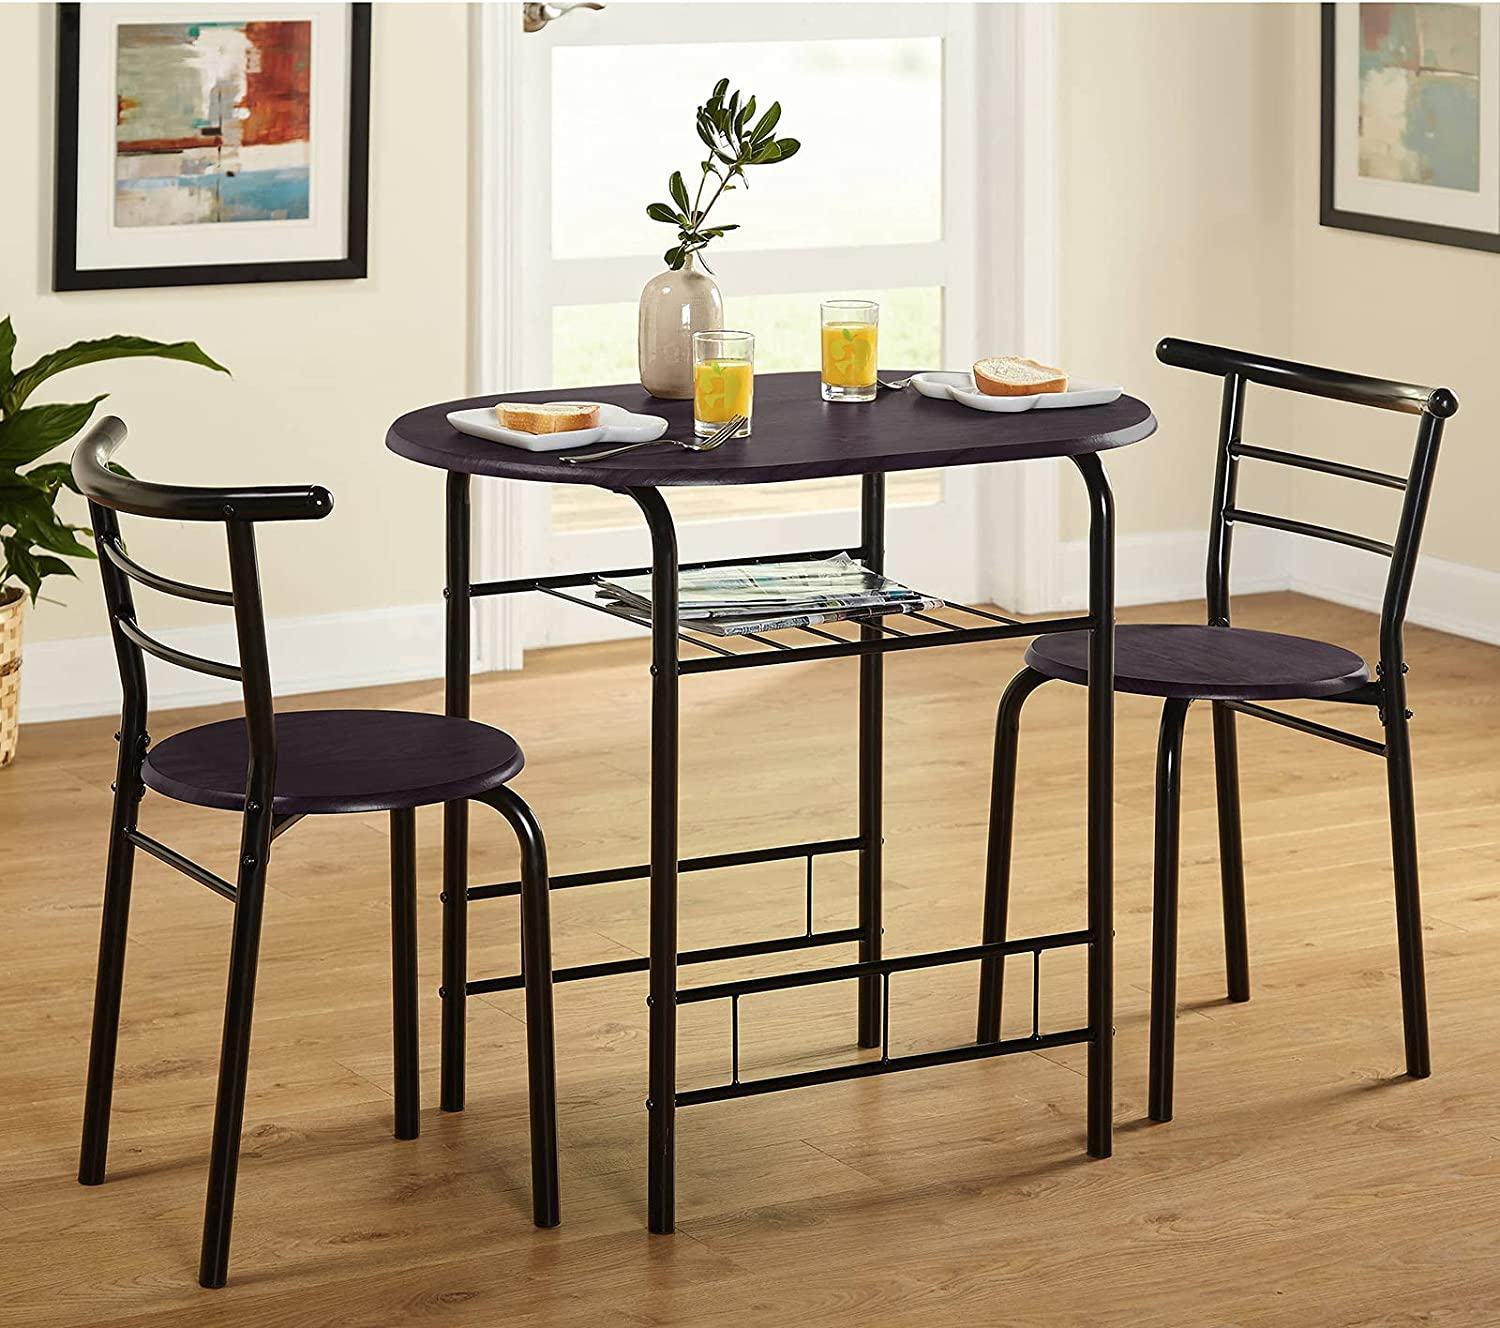 Buy MAISON ARTS 9 Piece Round Dining Room Table Set for 9 Space ...